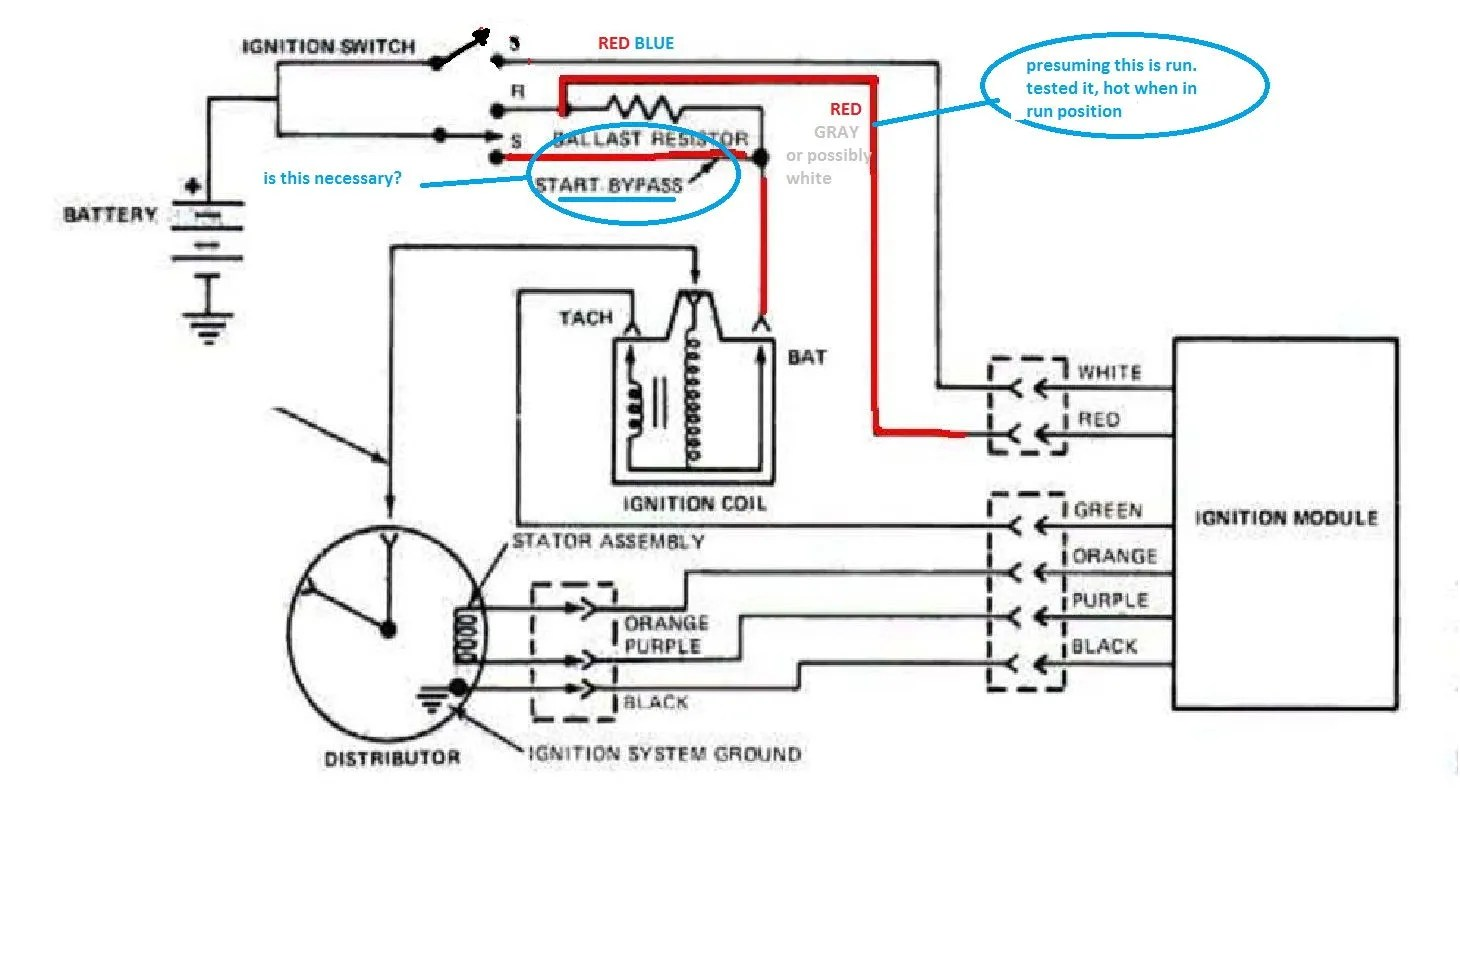 hunter thermostat 44260 wiring diagram 2wire trusted wiring diagrams hunter thermostat 44155c wiring diagram hunter thermostat 44260 wiring [ 1460 x 968 Pixel ]